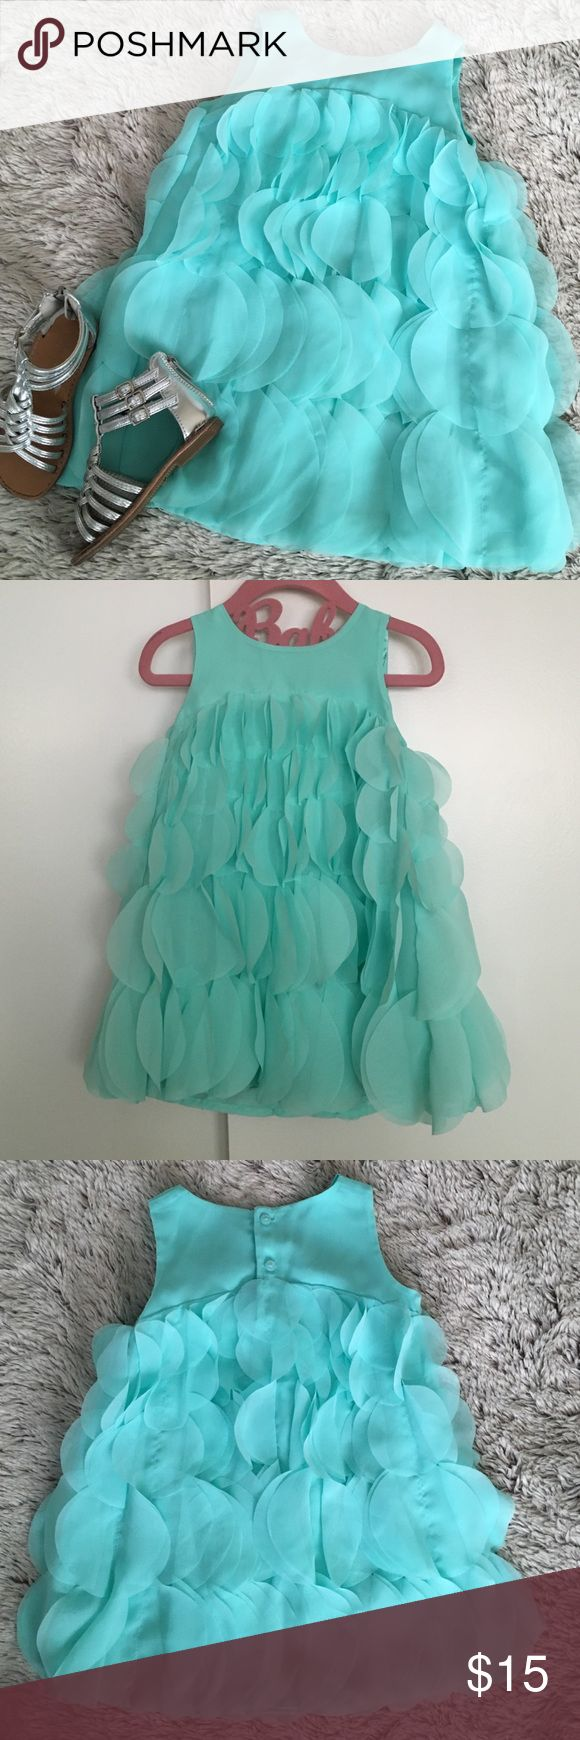 Aqua Party Dress Super cute and only worn once. Aqua colored sleeveless flapper like dress.  Has 2 buttons at the back.  Size 2T Dresses Formal